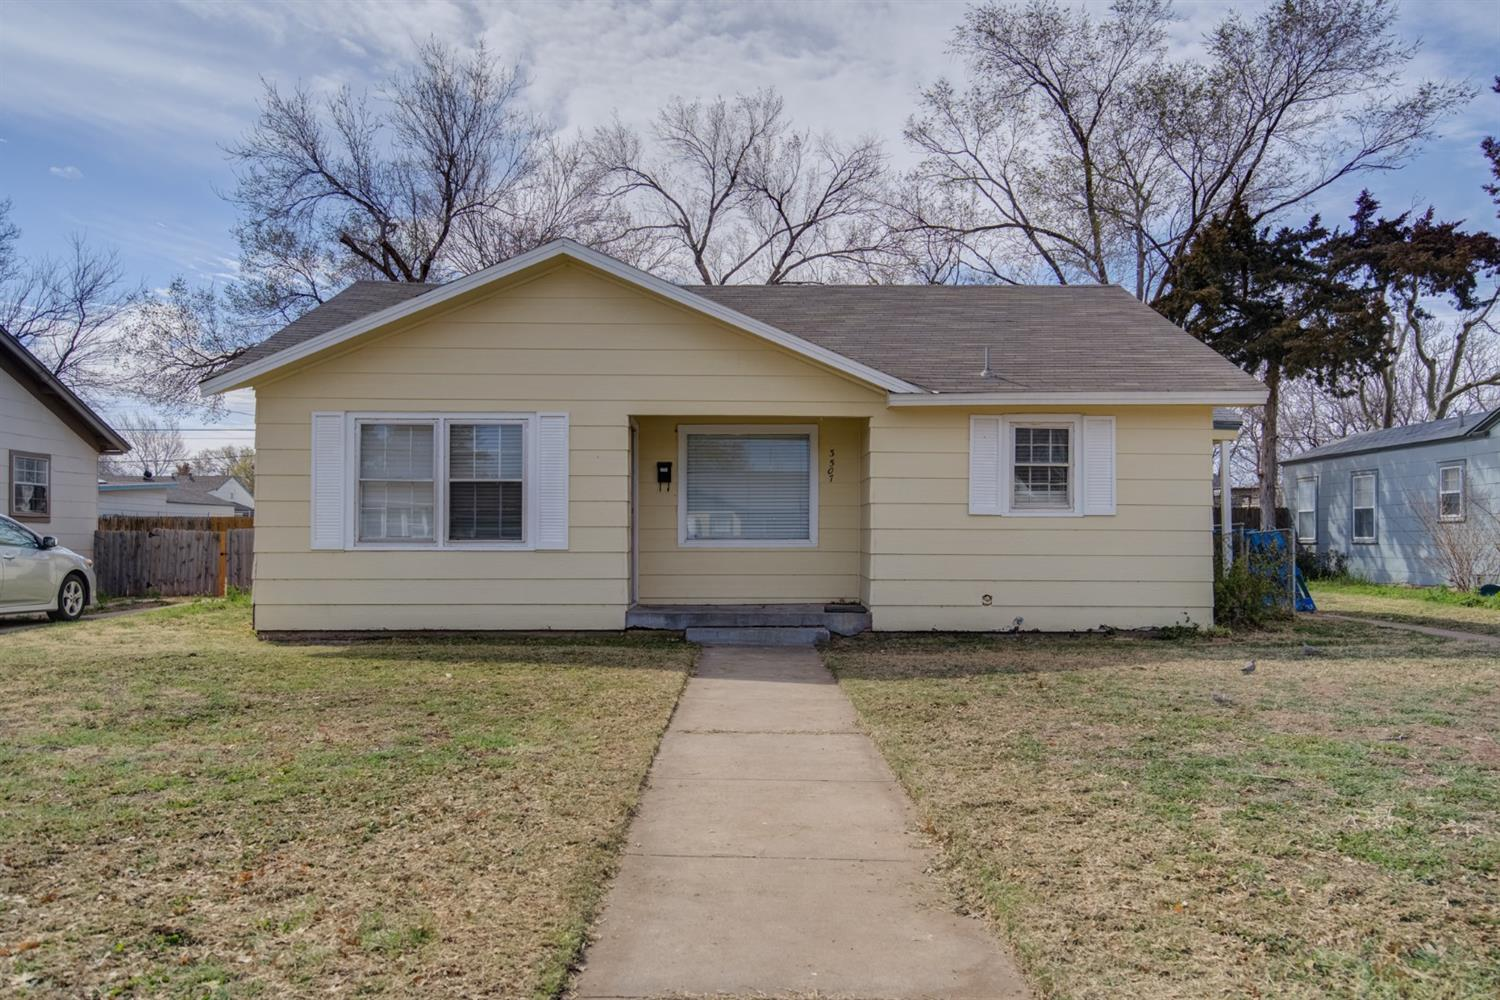 3507 29th Street, Lubbock in Lubbock County, TX 79410 Home for Sale